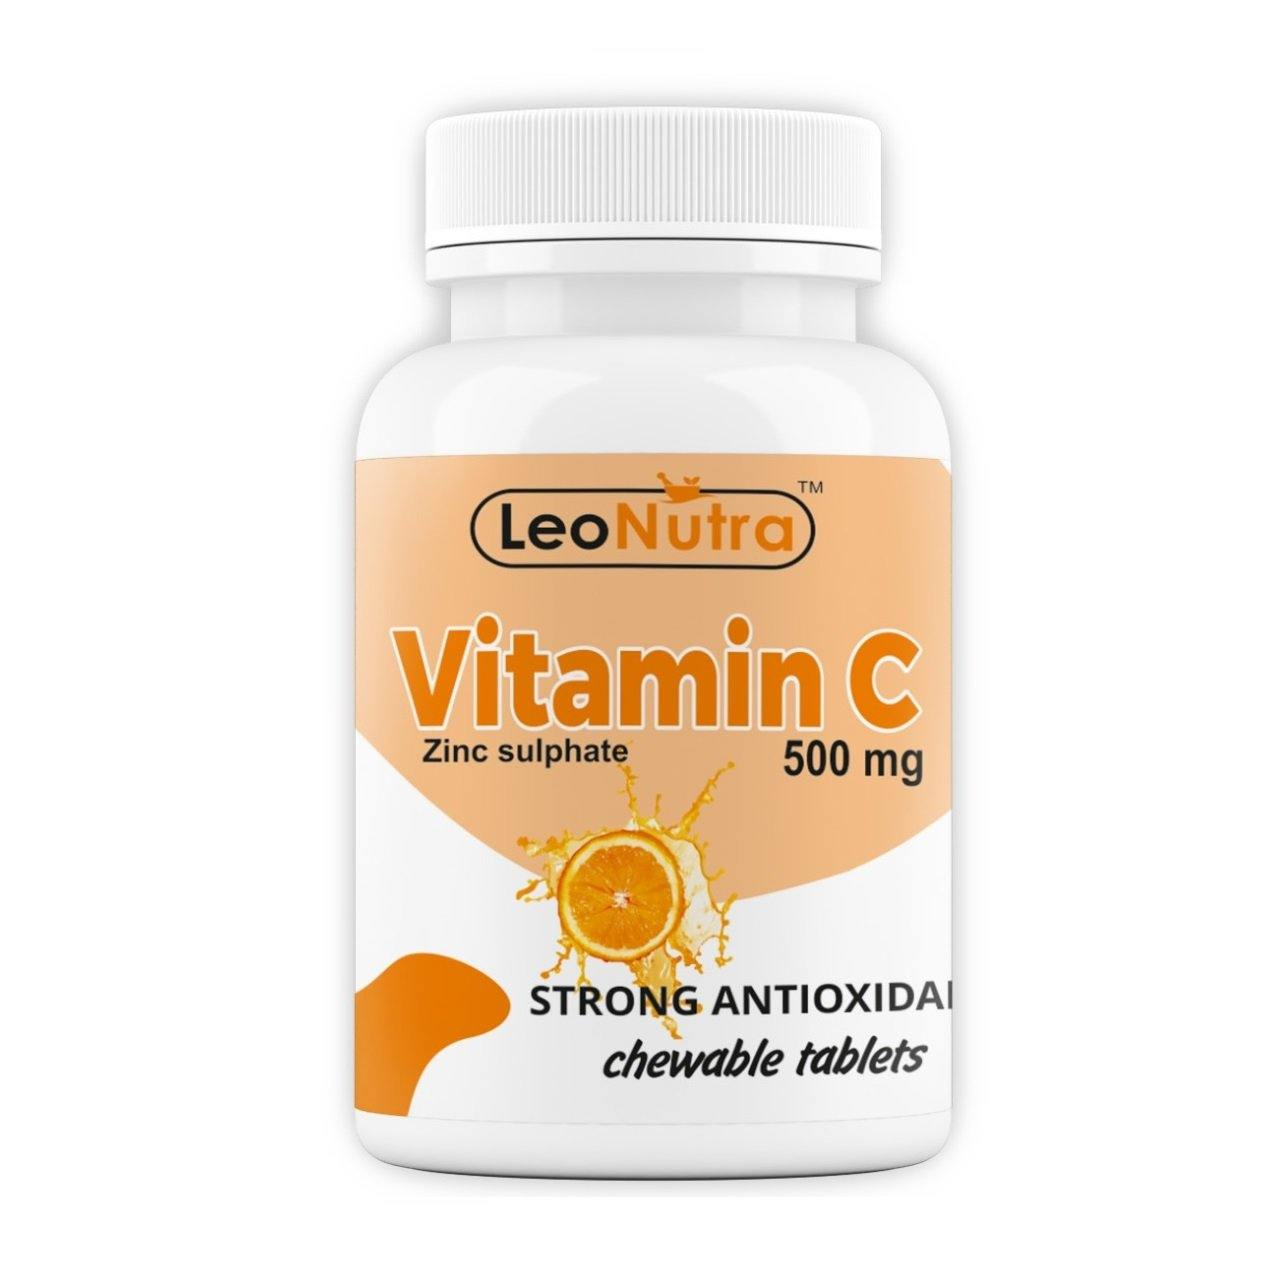 LeoNutra Vitamin C 500 mg | Immunity | Strong Antioxidant | 60 Chewable Tablets